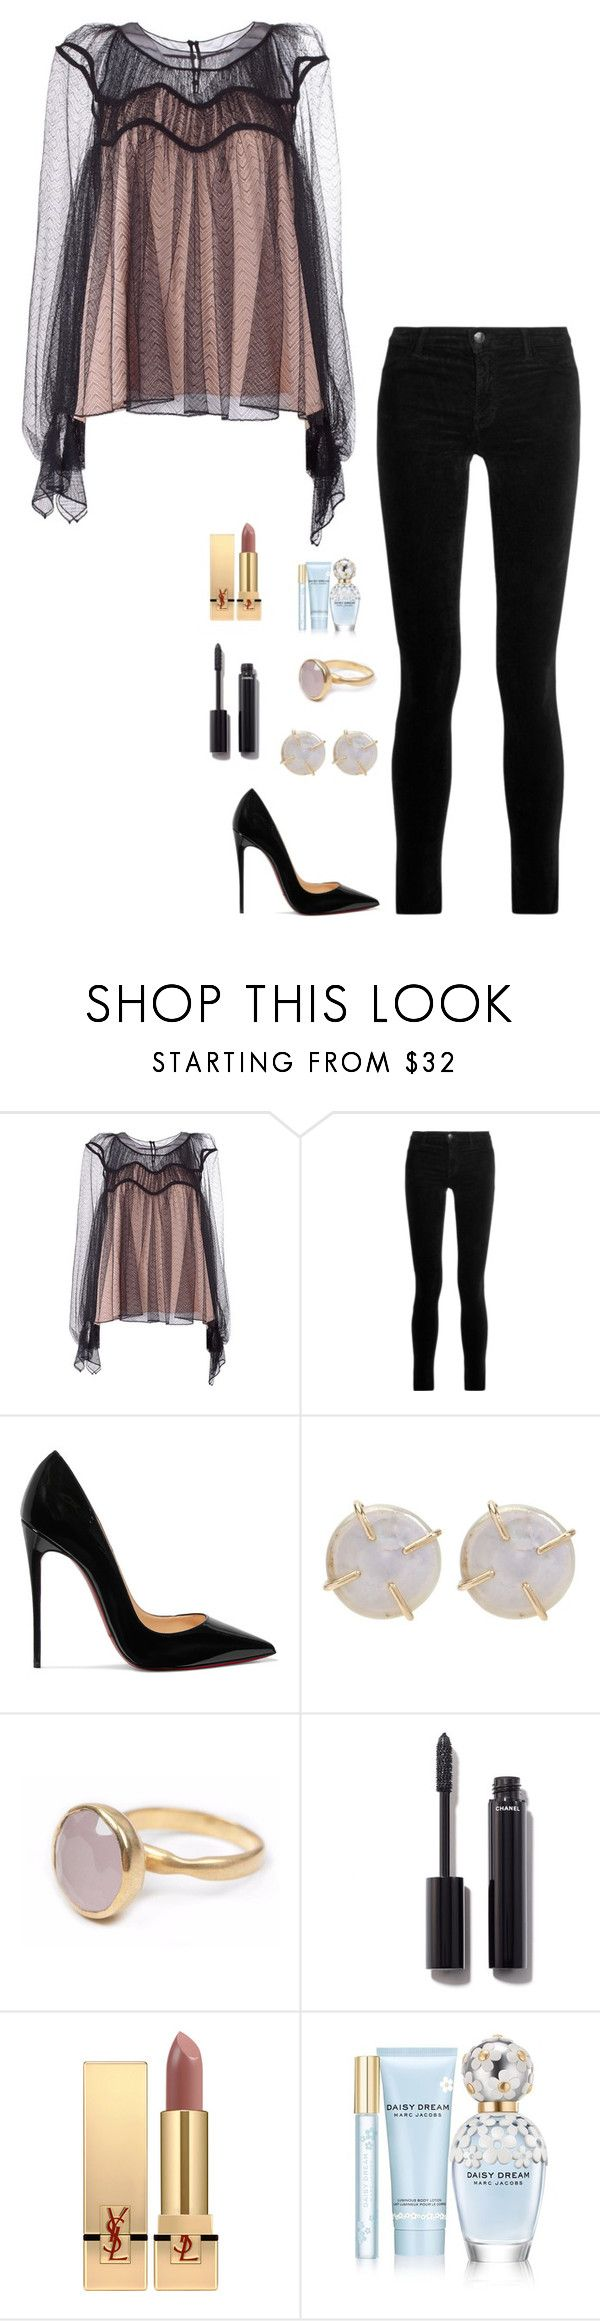 """Untitled #968"" by h1234l on Polyvore featuring Chloé, J Brand, Christian Louboutin, Melissa Joy Manning, Bohemia, Chanel, Yves Saint Laurent and Marc Jacobs"